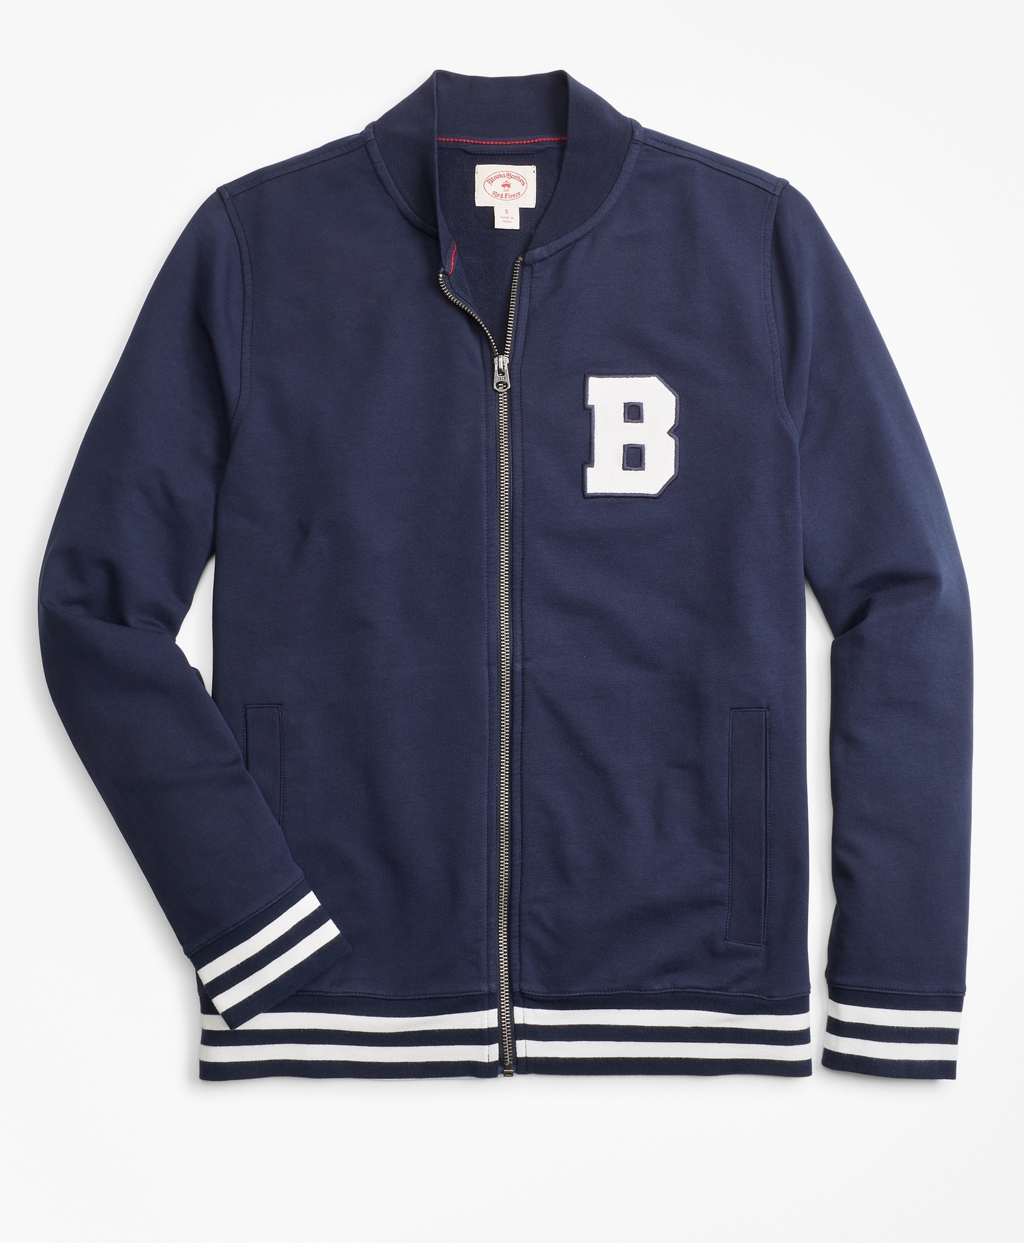 Men's Vintage Style Coats and Jackets Brooks Brothers Mens French Terry Letterman Lightweight Baseball Jacket $79.50 AT vintagedancer.com